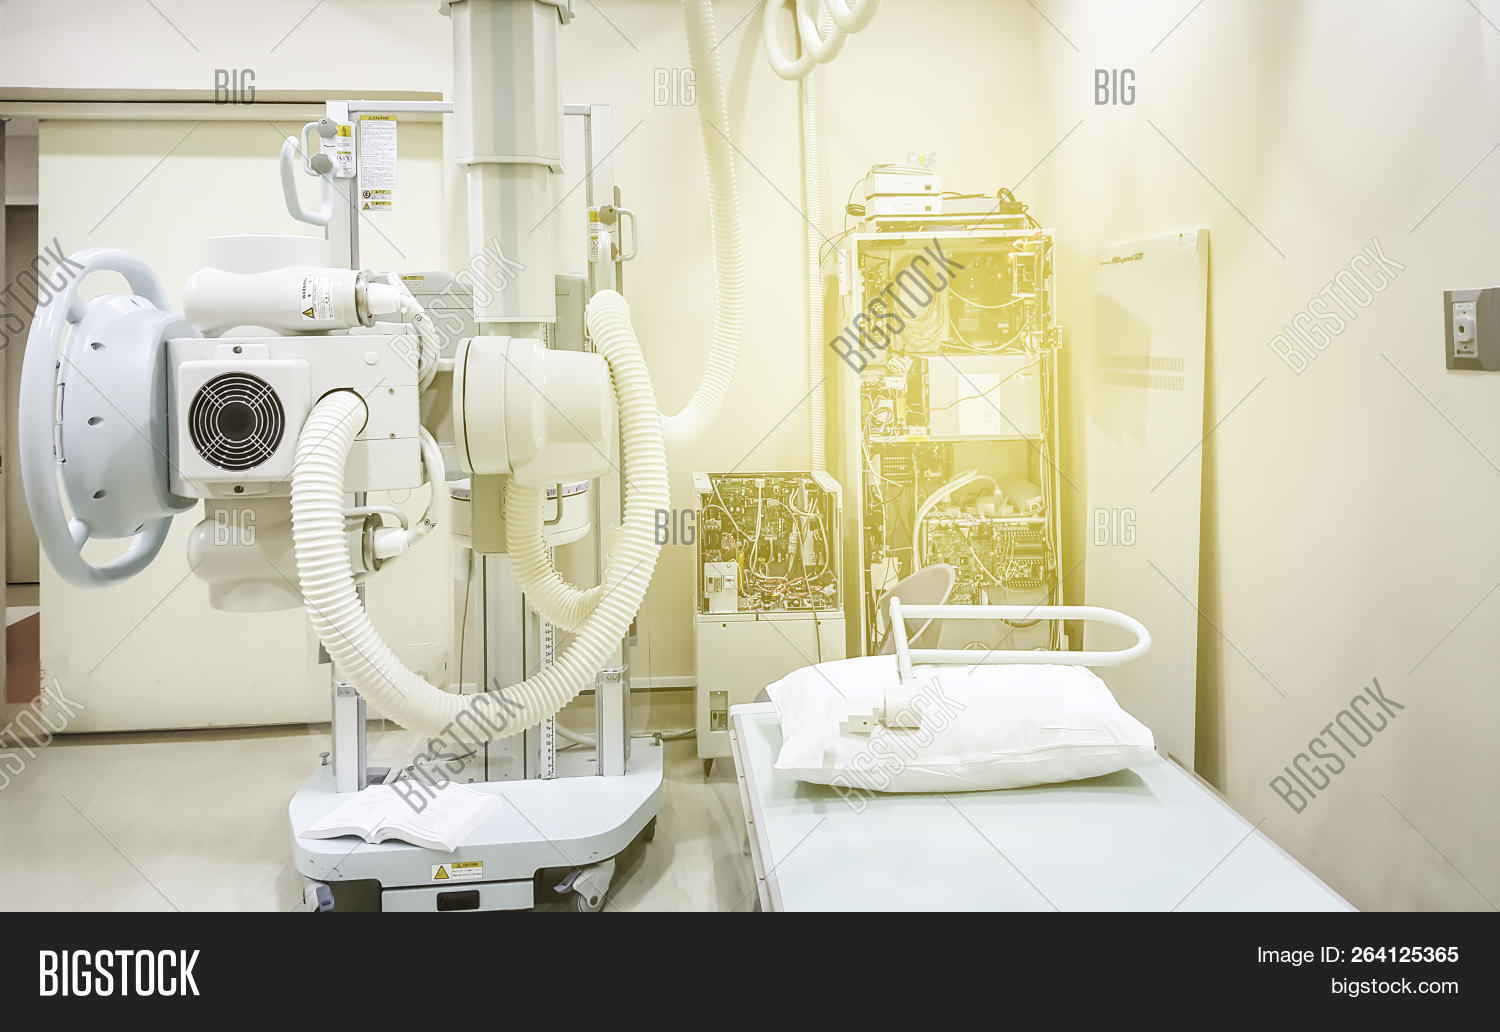 Maintenance  repairing and checking every 3 month X-ray machine / X-ray engine in the hospital. Services concept.